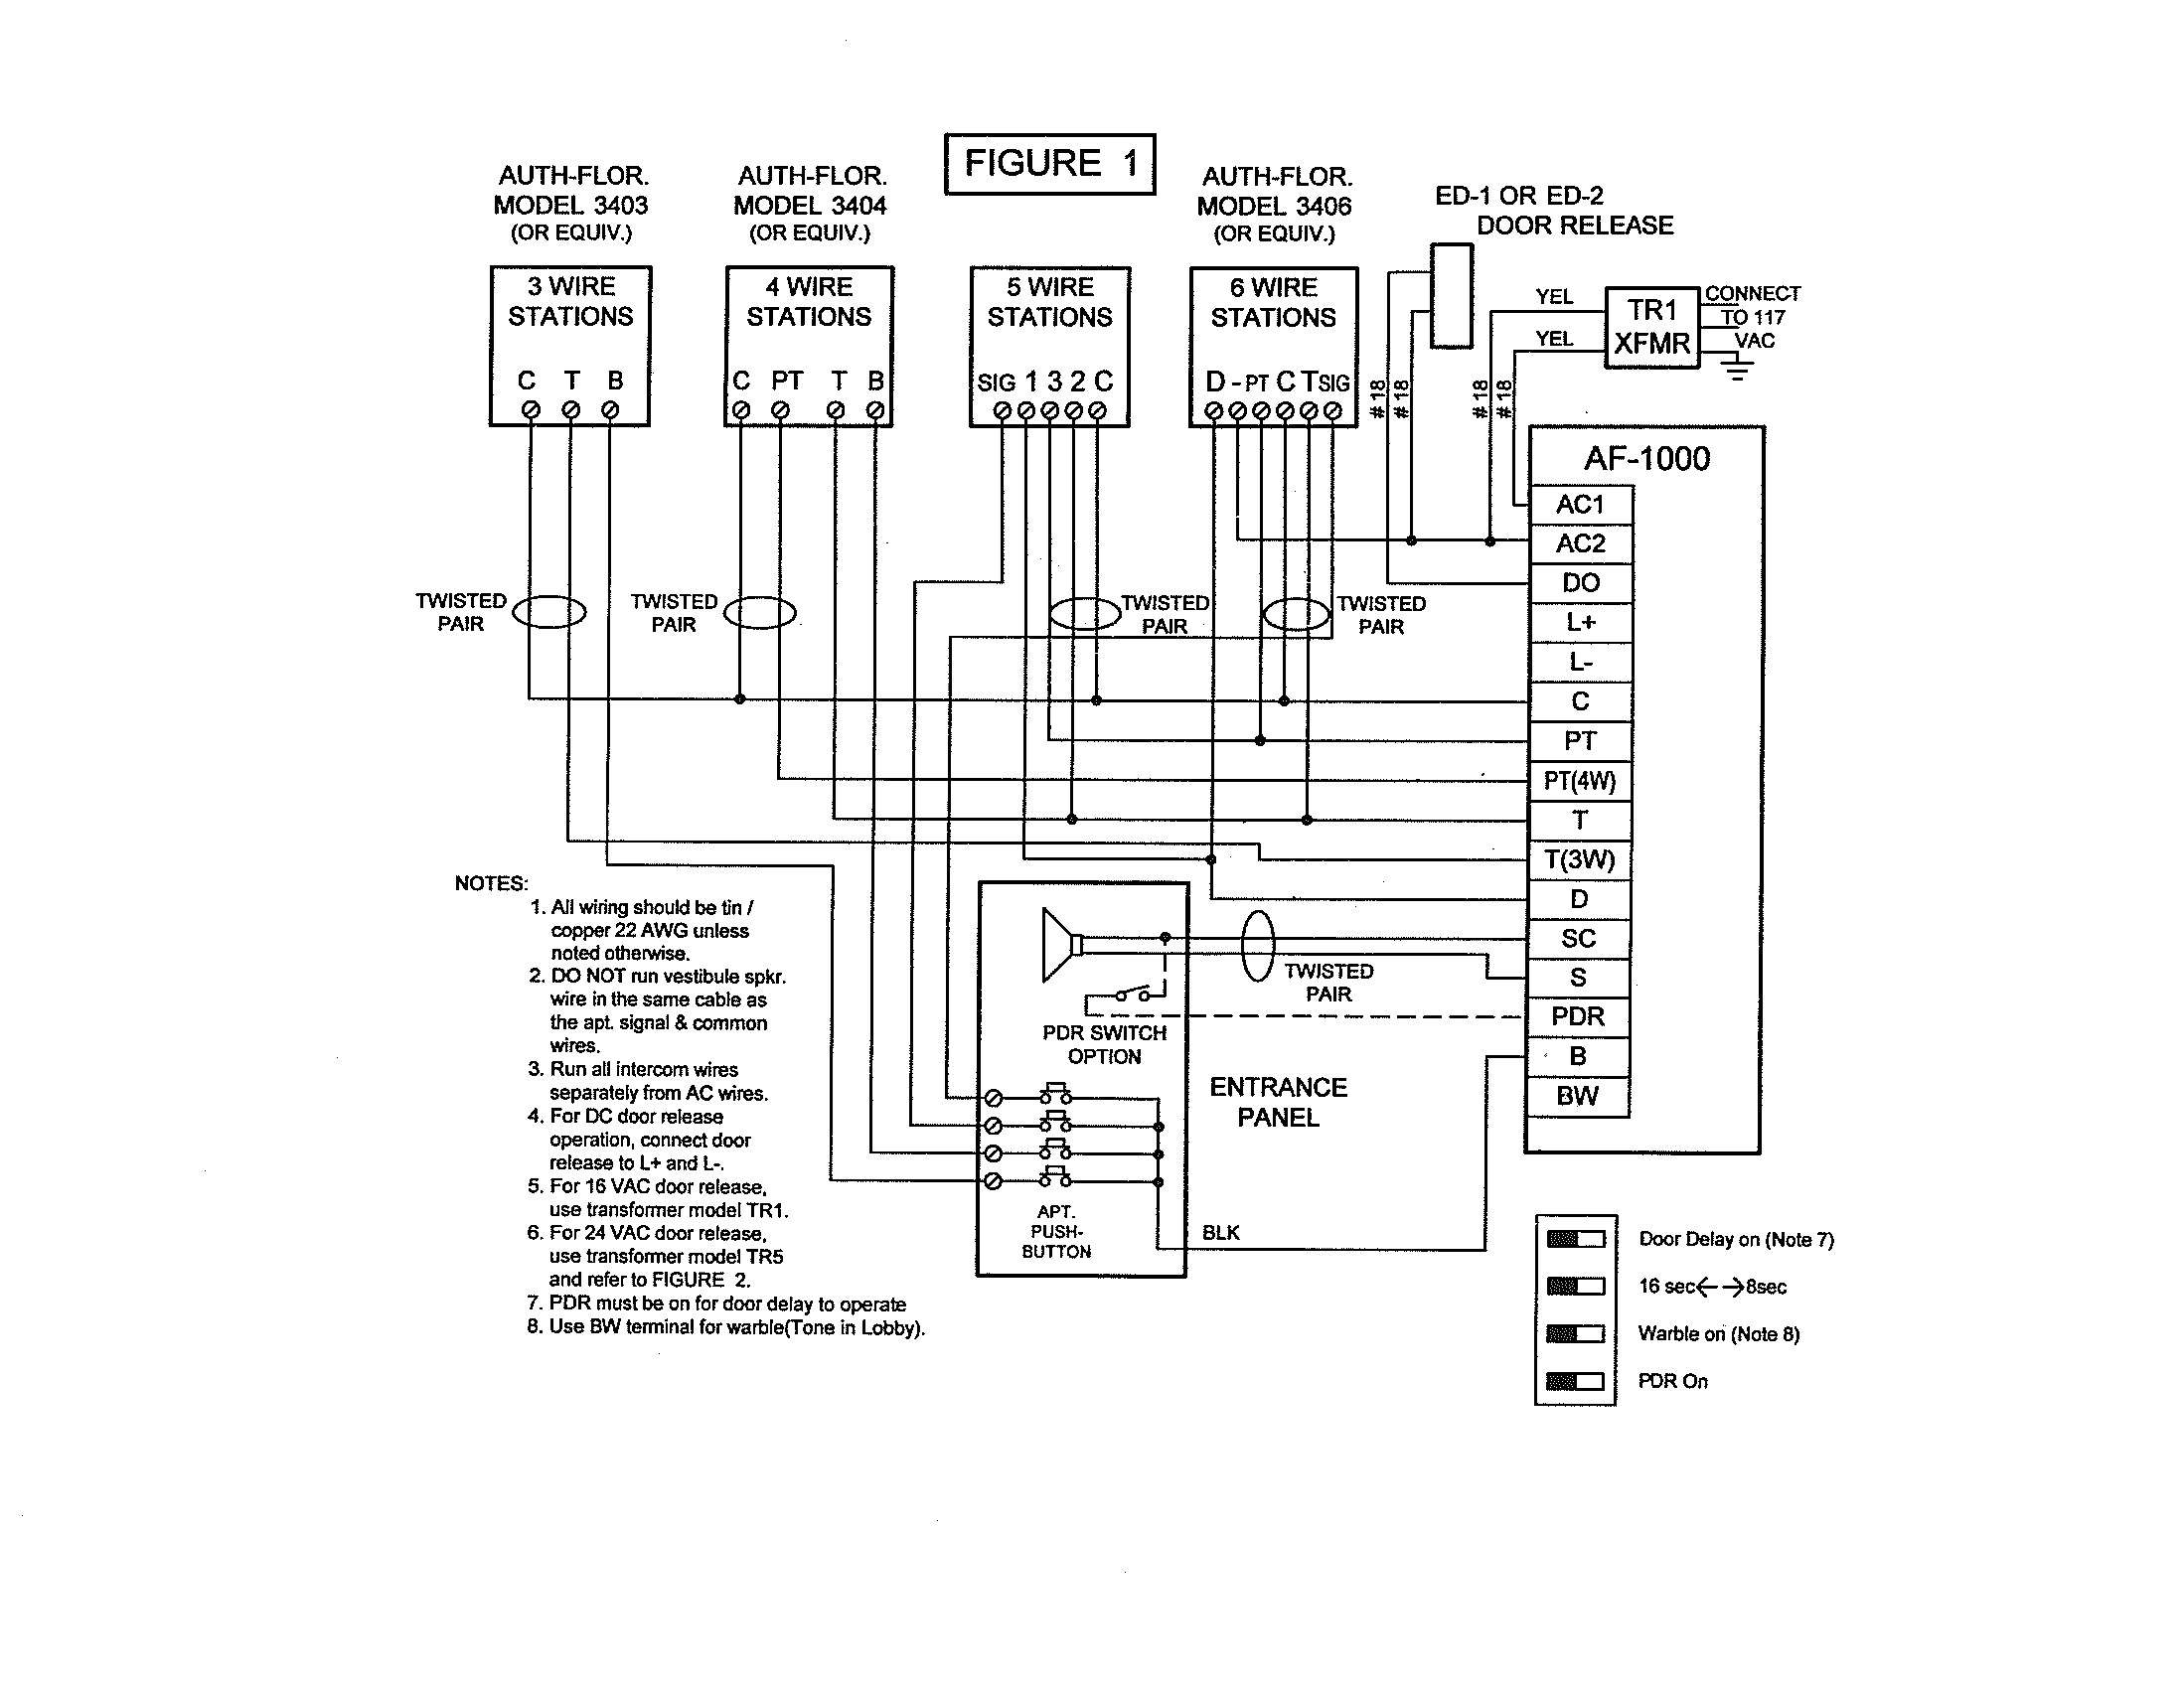 pacific intercom wiring diagram Download-Pacific Electronics 3404 4 Wire Plastic Inter Station Prepossessing Wiring Diagram 18-b